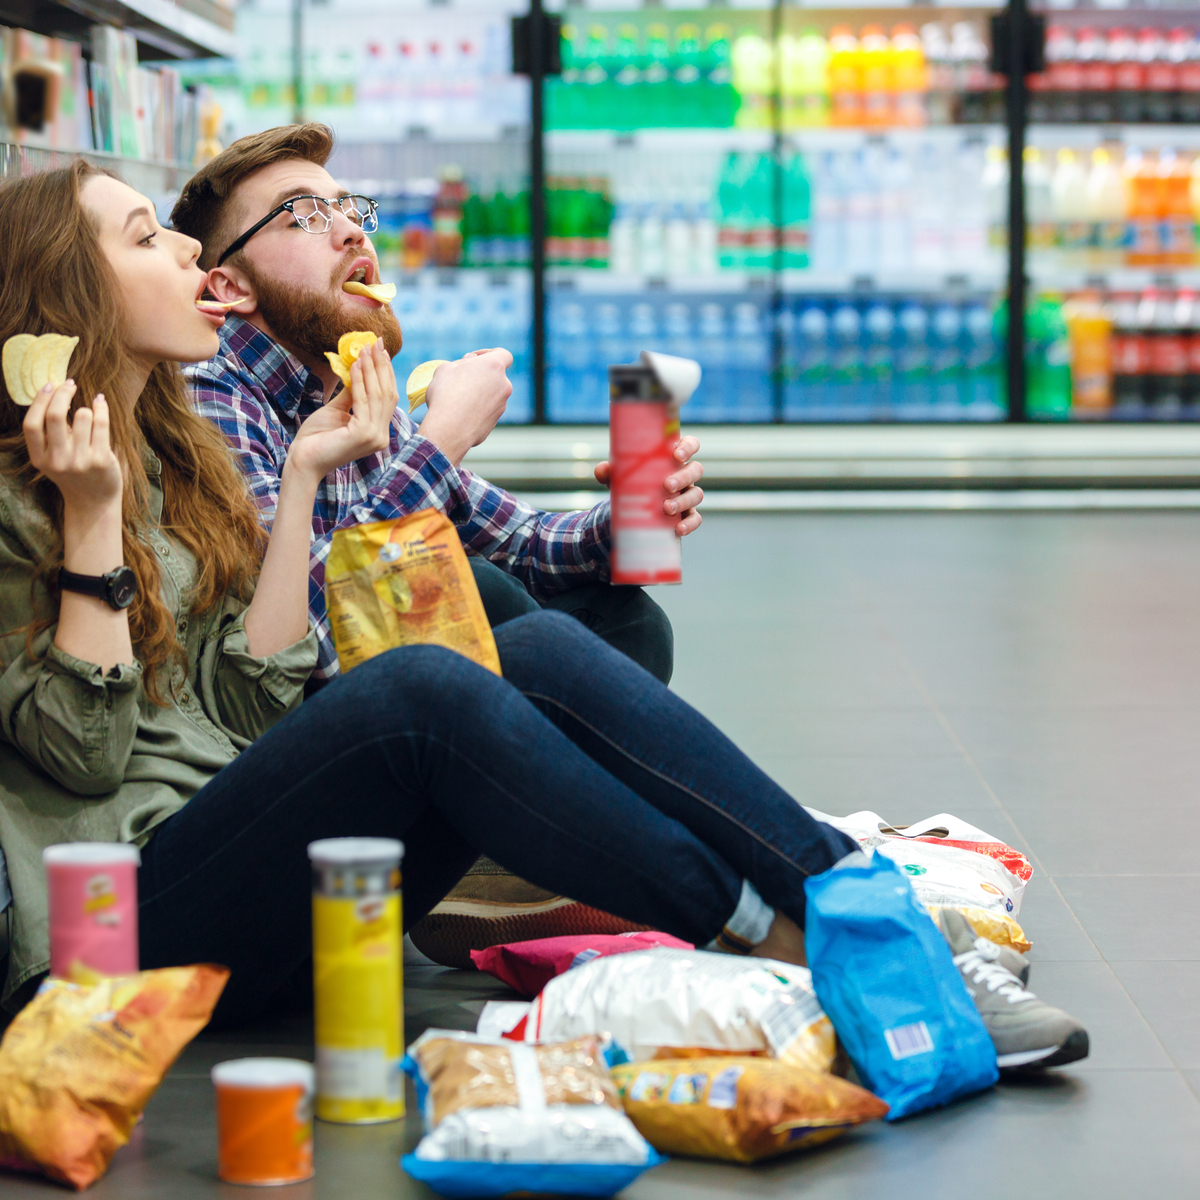 Couple eating junk food